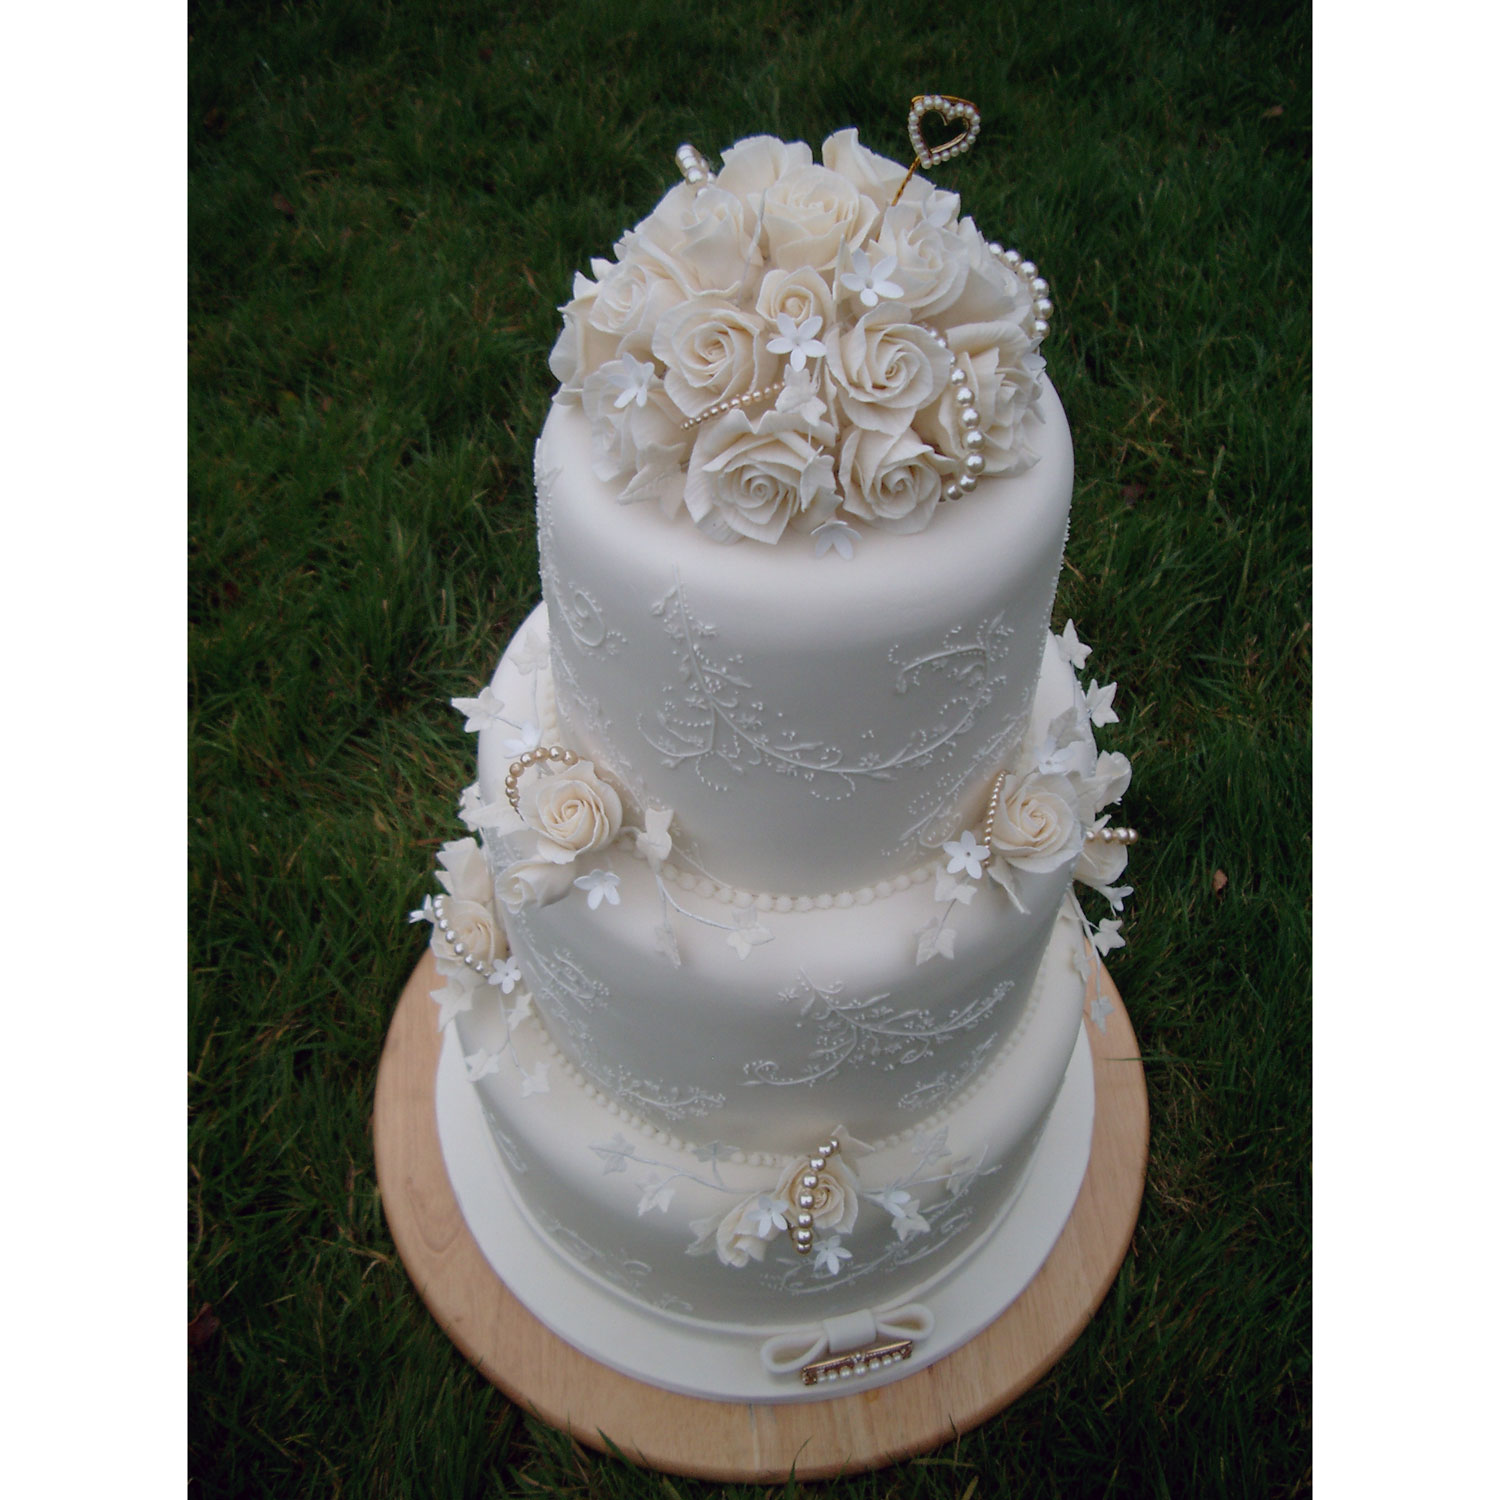 Wedding Gifts Glasgow: Glasgow Pearl Icing Lace Wedding Cake With Sugar Roses